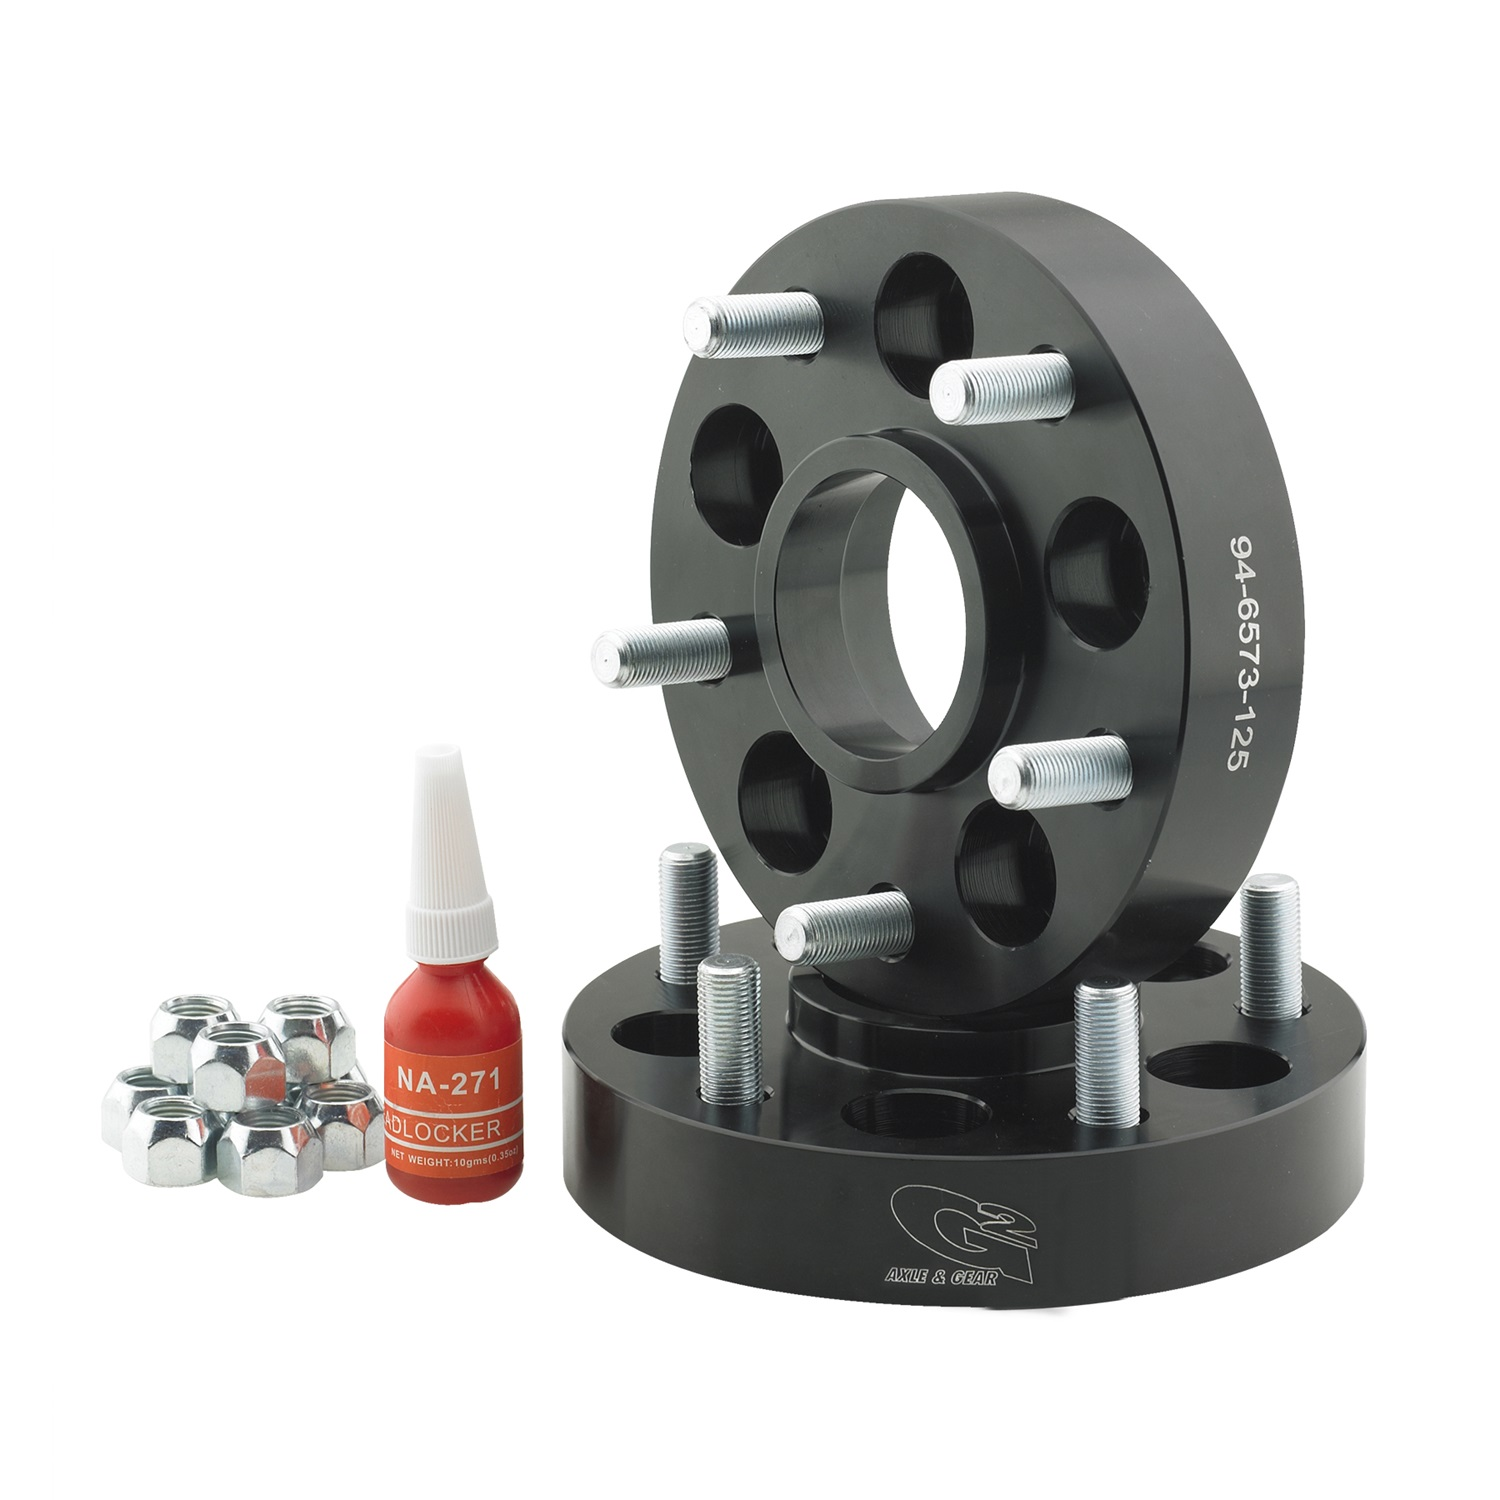 G2 Axle and Gear Wheel Adapter